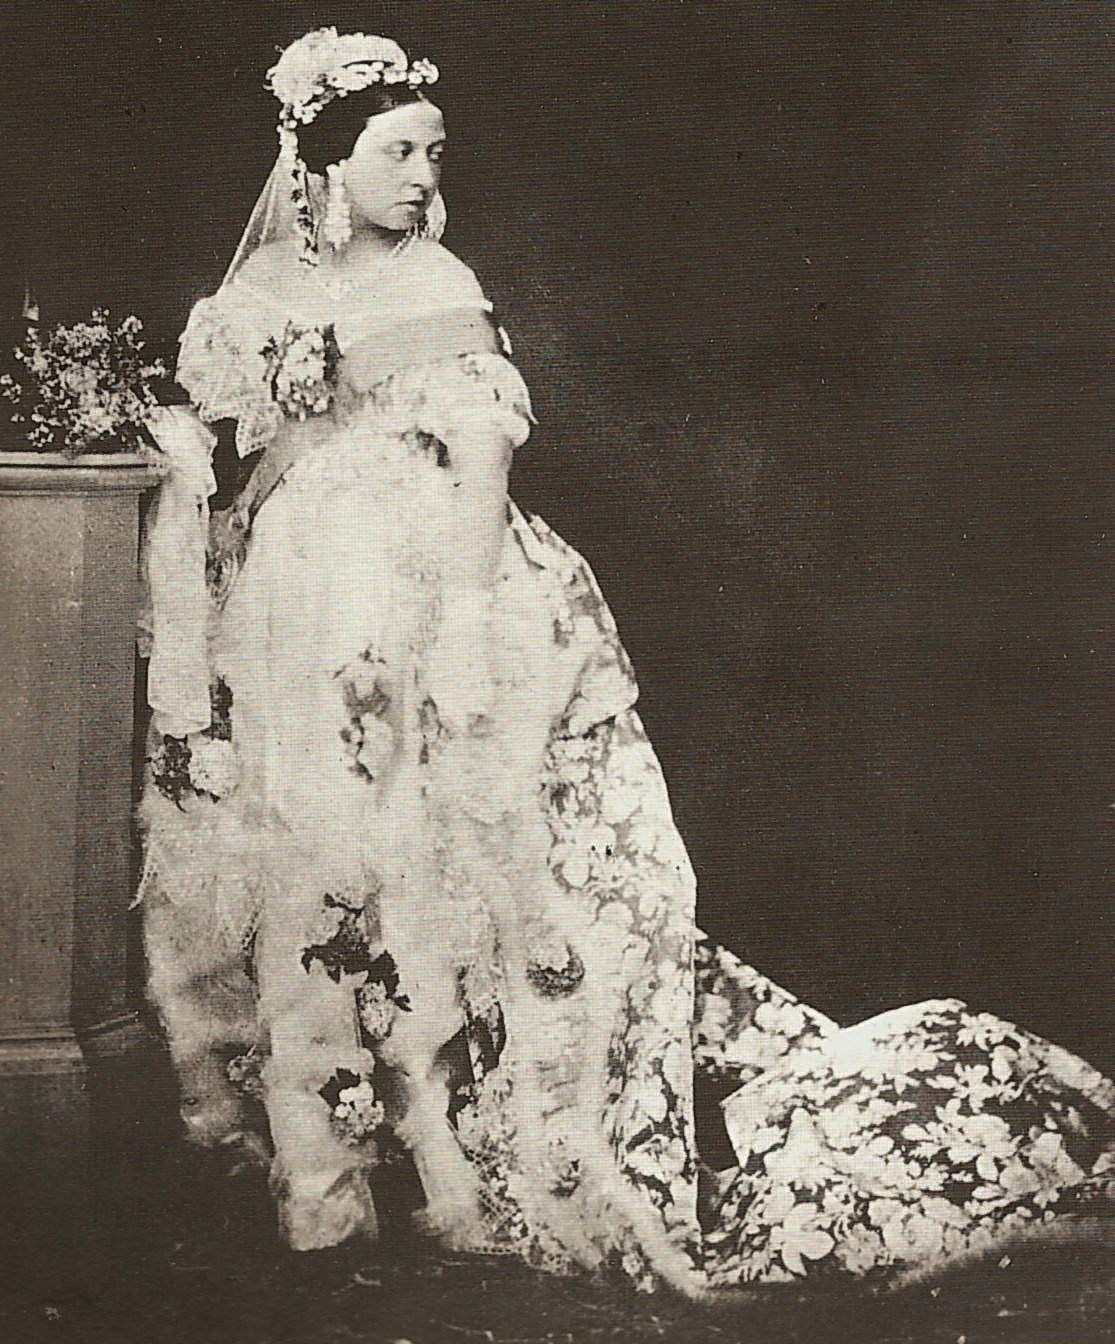 Queen Victoria S Gown In 1840 Is Referenced As The Royal Wedding Dress That Populari Queen Victoria Wedding Dress Queen Victoria Wedding Victoria Wedding Dress [ 1344 x 1115 Pixel ]